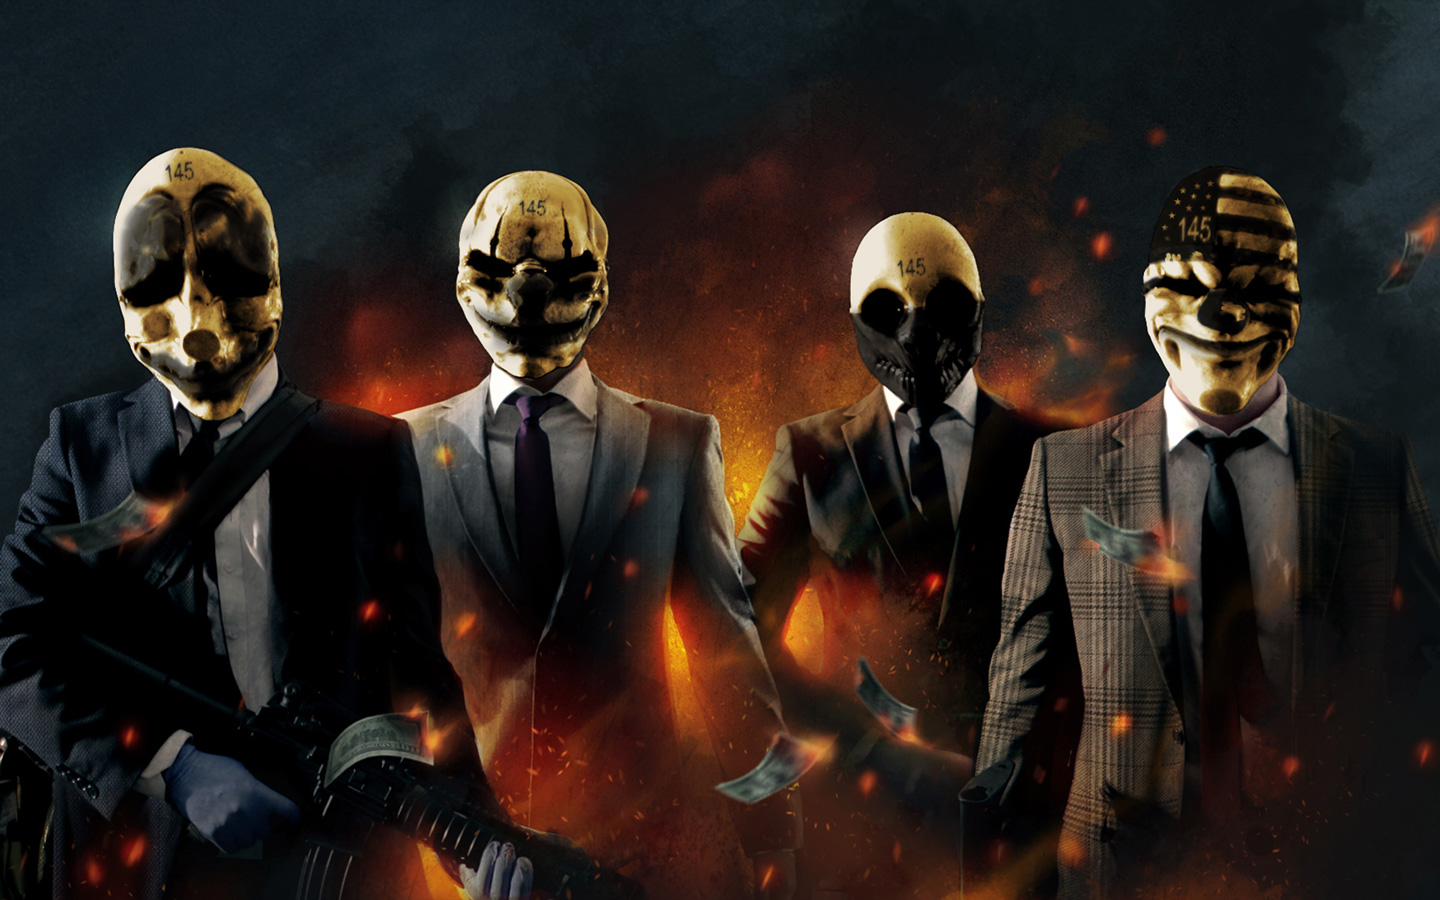 Free Payday: The Heist Wallpaper in 1440x900